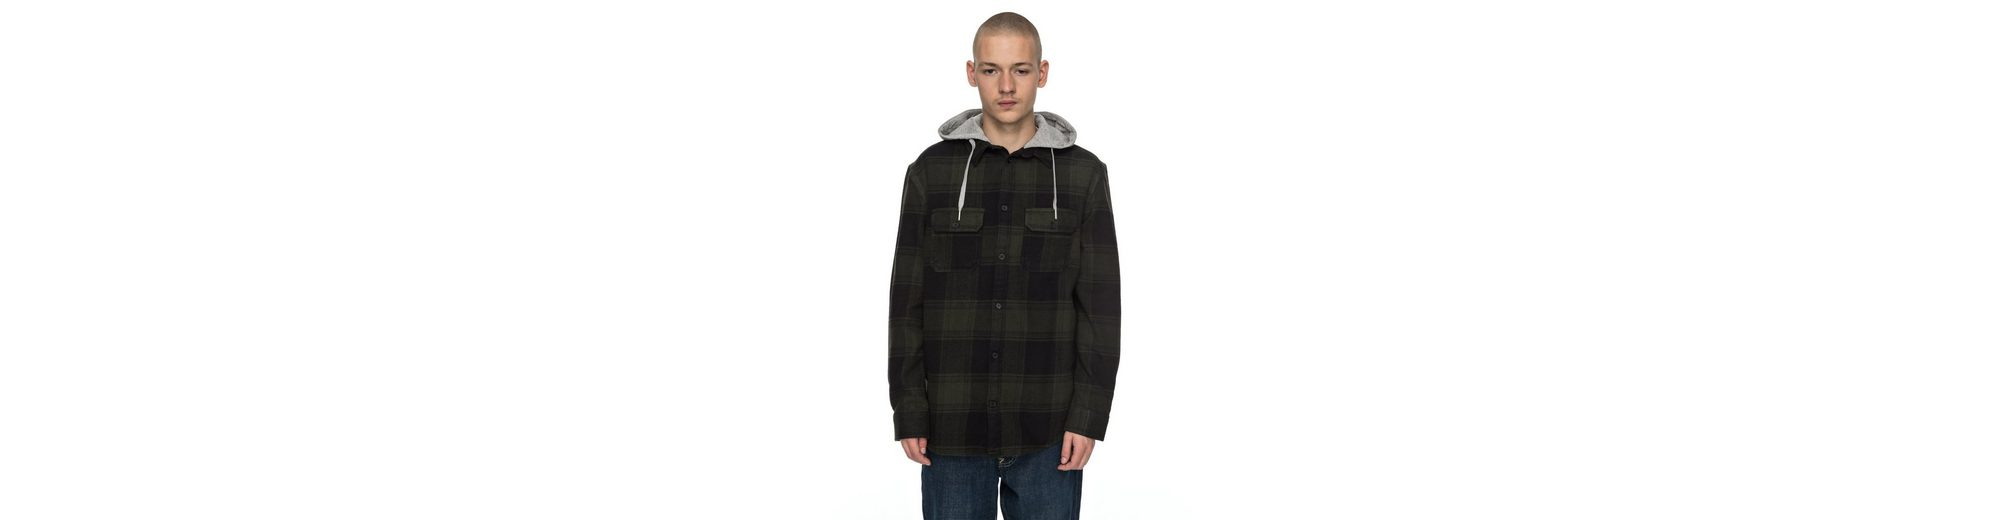 DC Shoes Langarm-Hemd mit Kapuze Runnel Flannel Äußerst Billig Offiziellen Rabatt Amazon Original- EWVYtvwyt